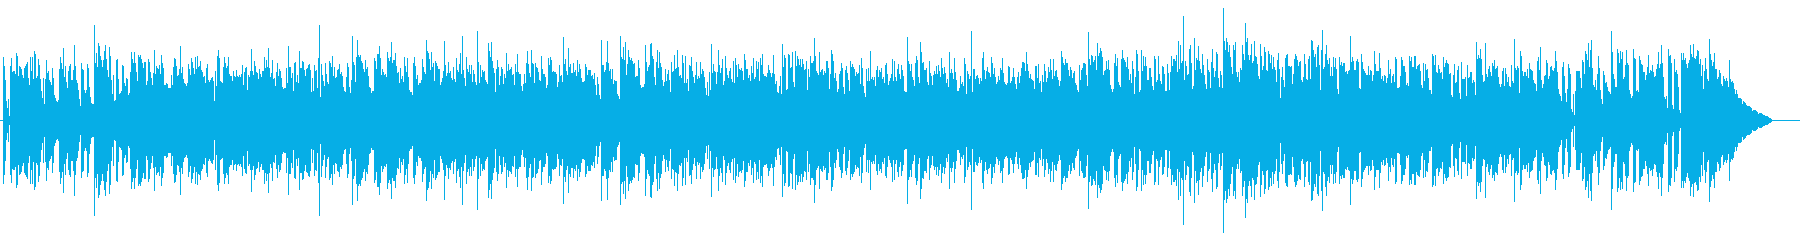 Sometimes like a girl without a mother (guitar)'s reproduced waveform